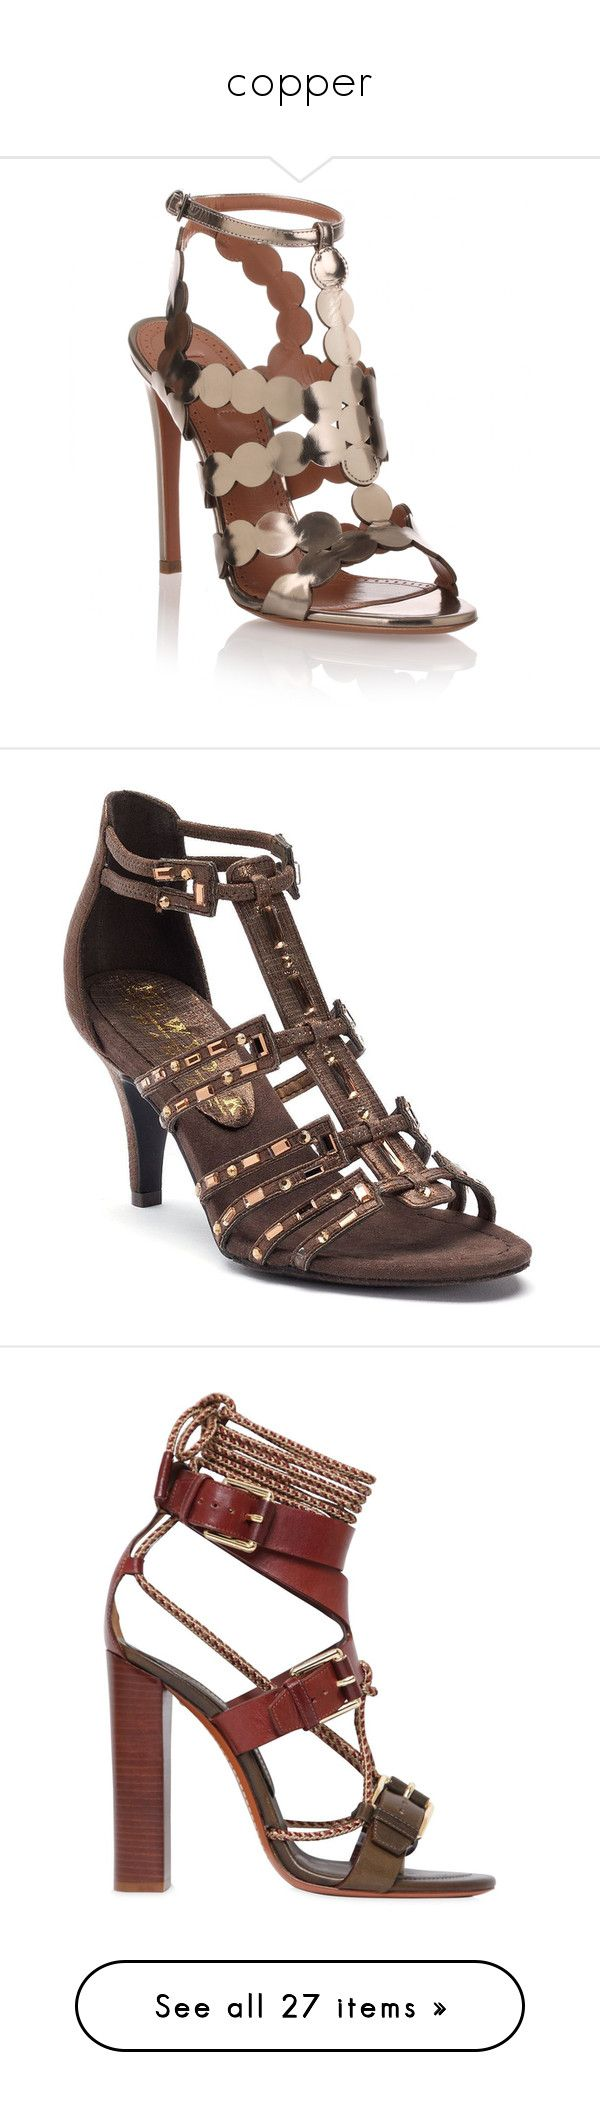 """""""copper"""" by aliceridler ❤ liked on Polyvore featuring shoes, sandals, silver, silver shoes, cutout sandals, silver sandals, high heel shoes, ankle strap high heel sandals, brown oth and brown sandals"""